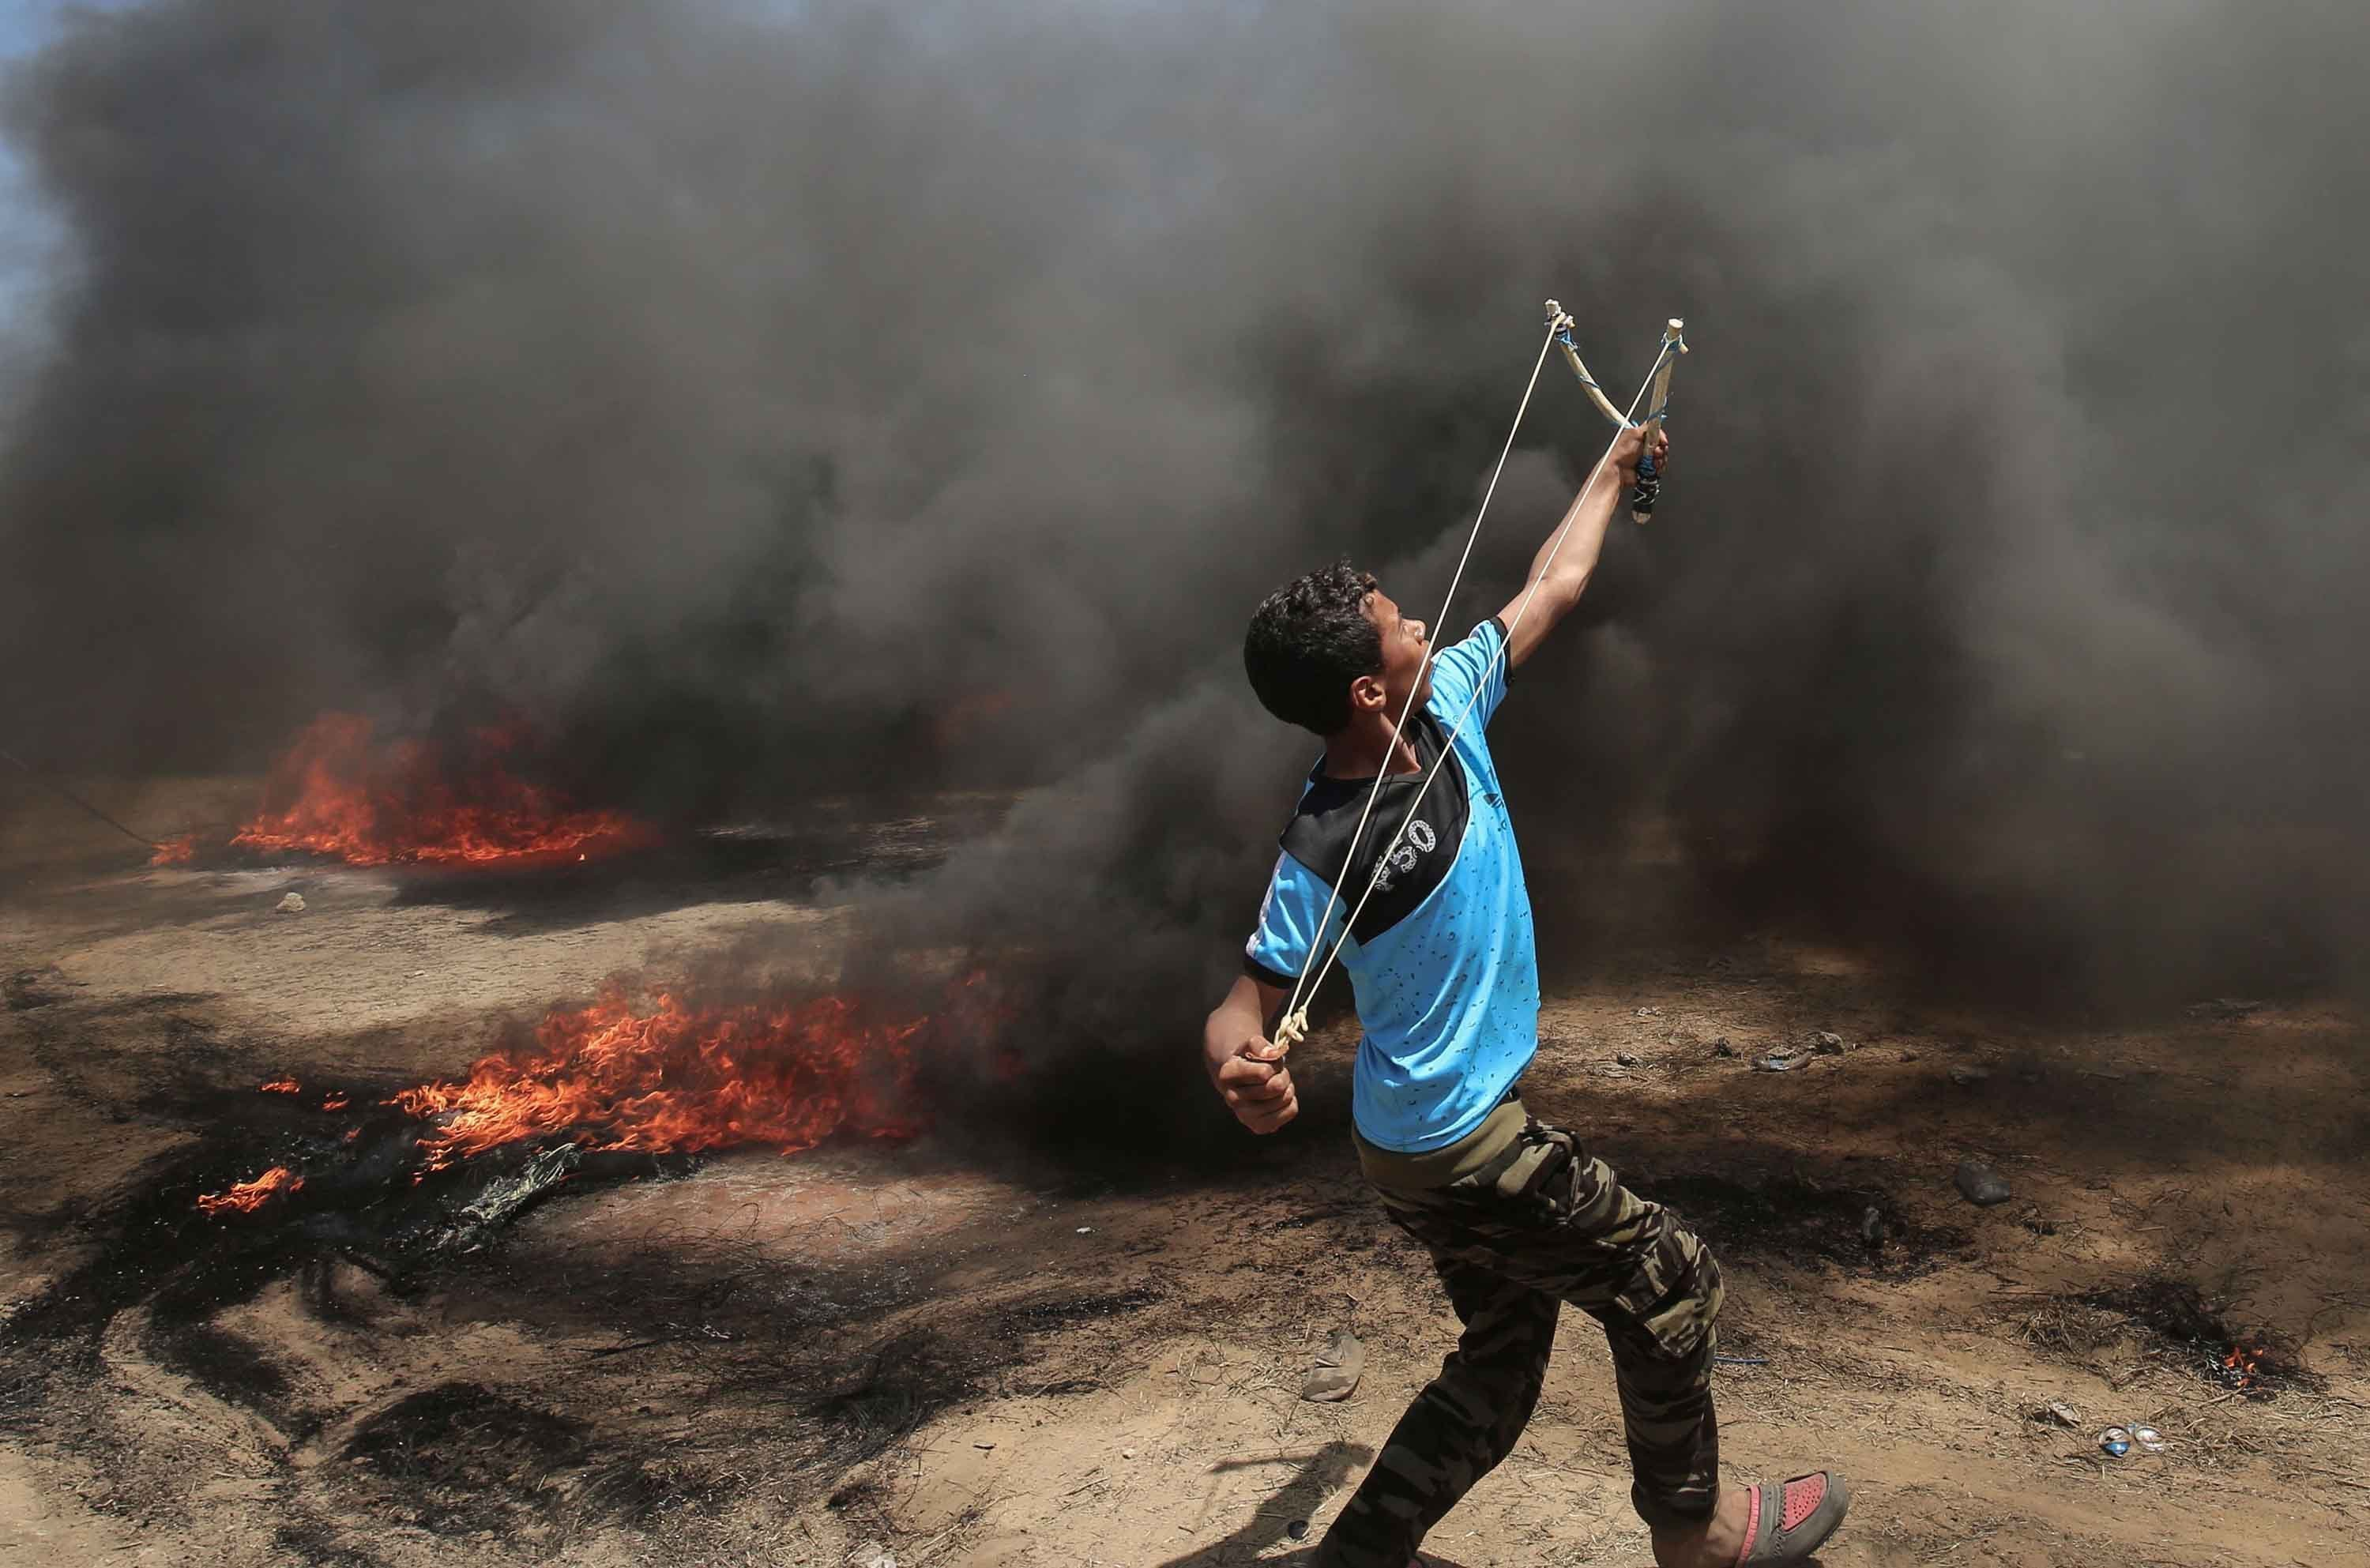 Dozens of Palestinians were killed by Israeli forces during clashes at the Gaza border on Monday, the largest number of fatalities suffered in one day since the latest round of protests began more than six weeks ago, the Palestinian Ministry of Health...